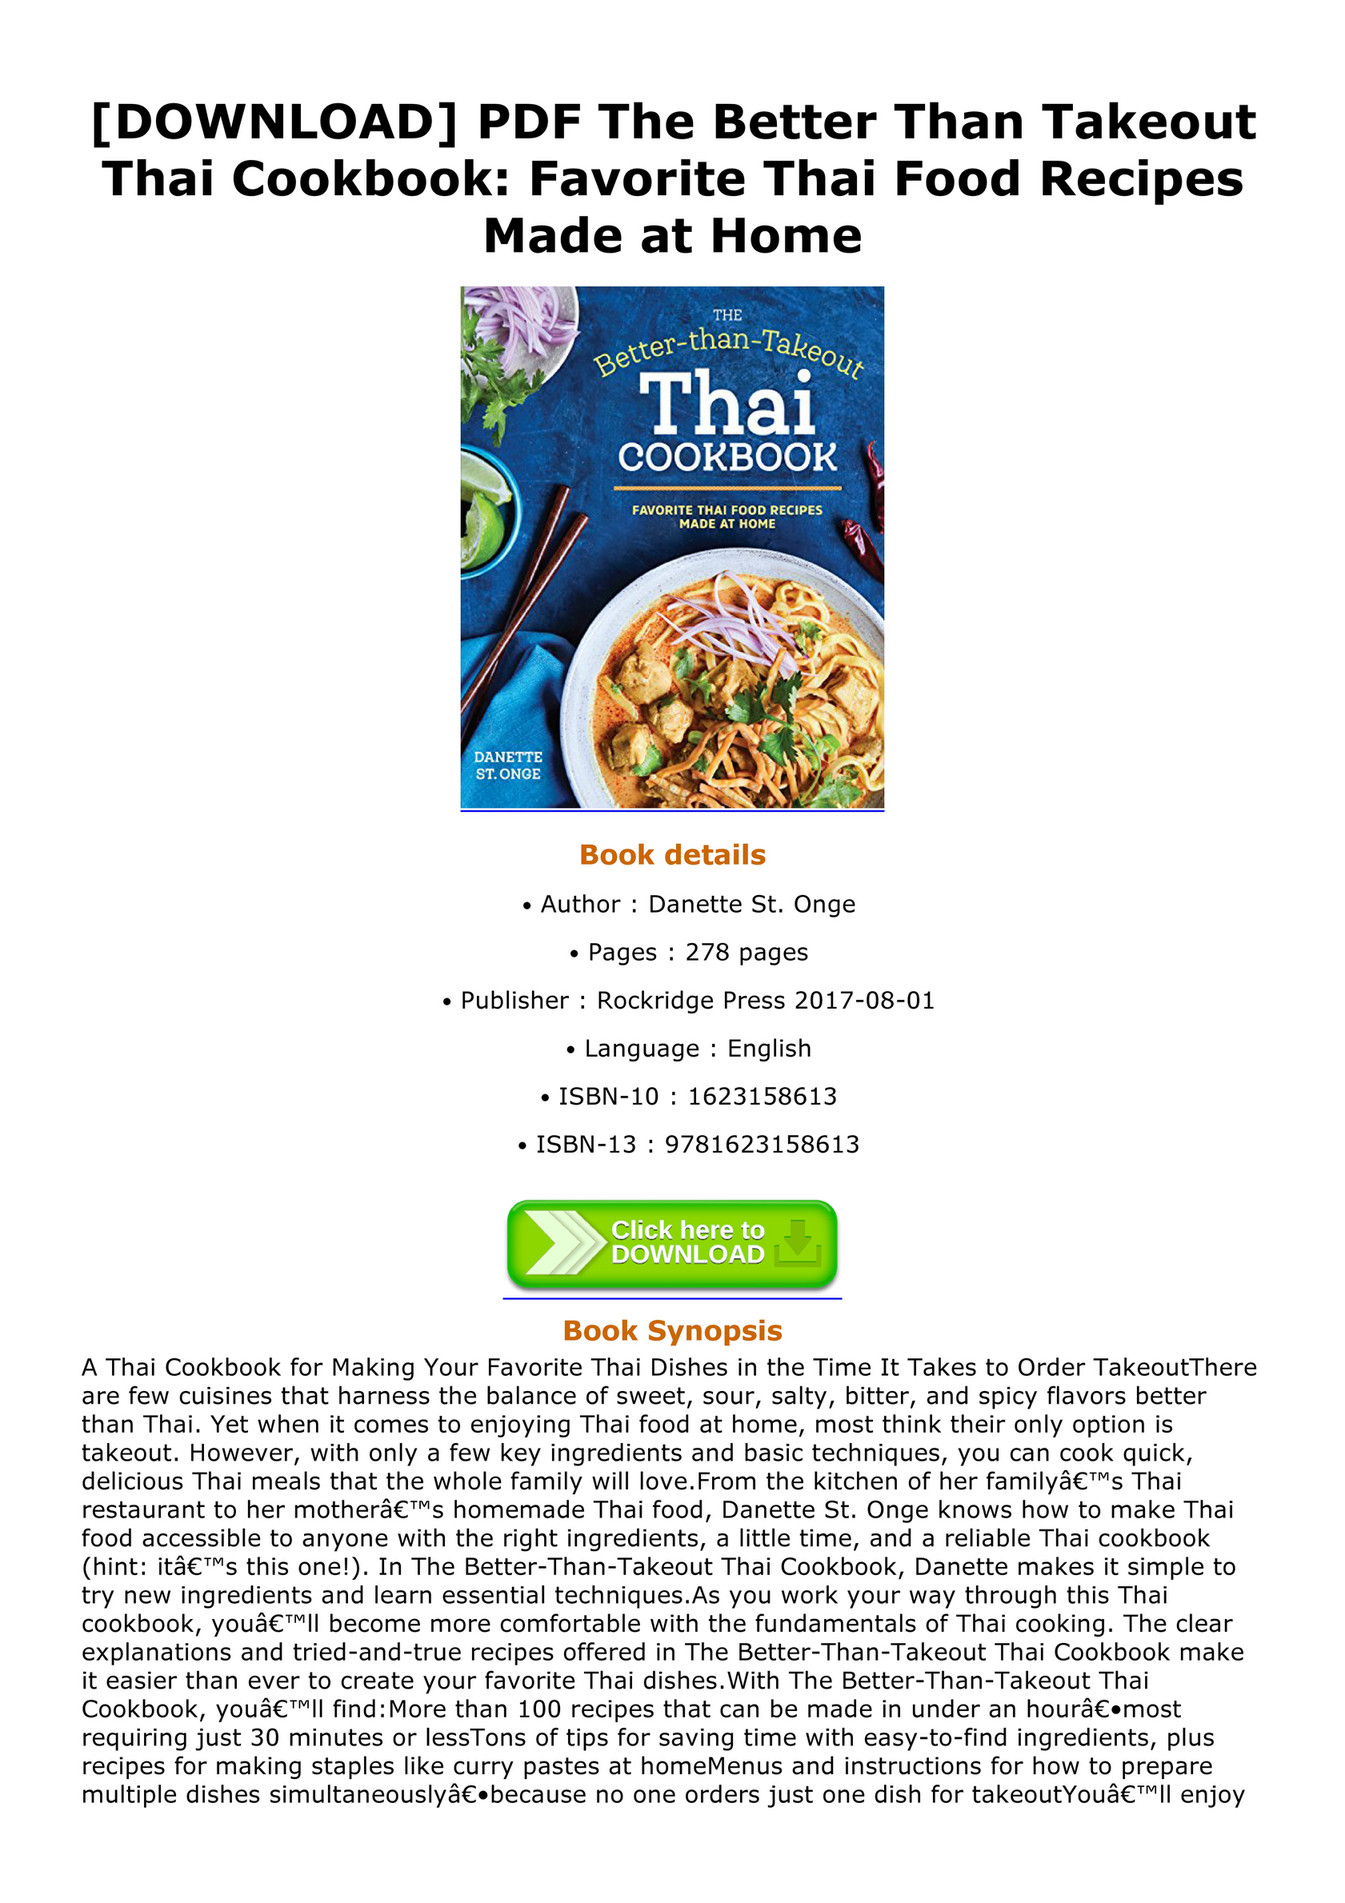 Childers download pdf the better than takeout thai cookbook childers download pdf the better than takeout thai cookbook favorite thai food recipes made at home page 1 created with publitas forumfinder Image collections